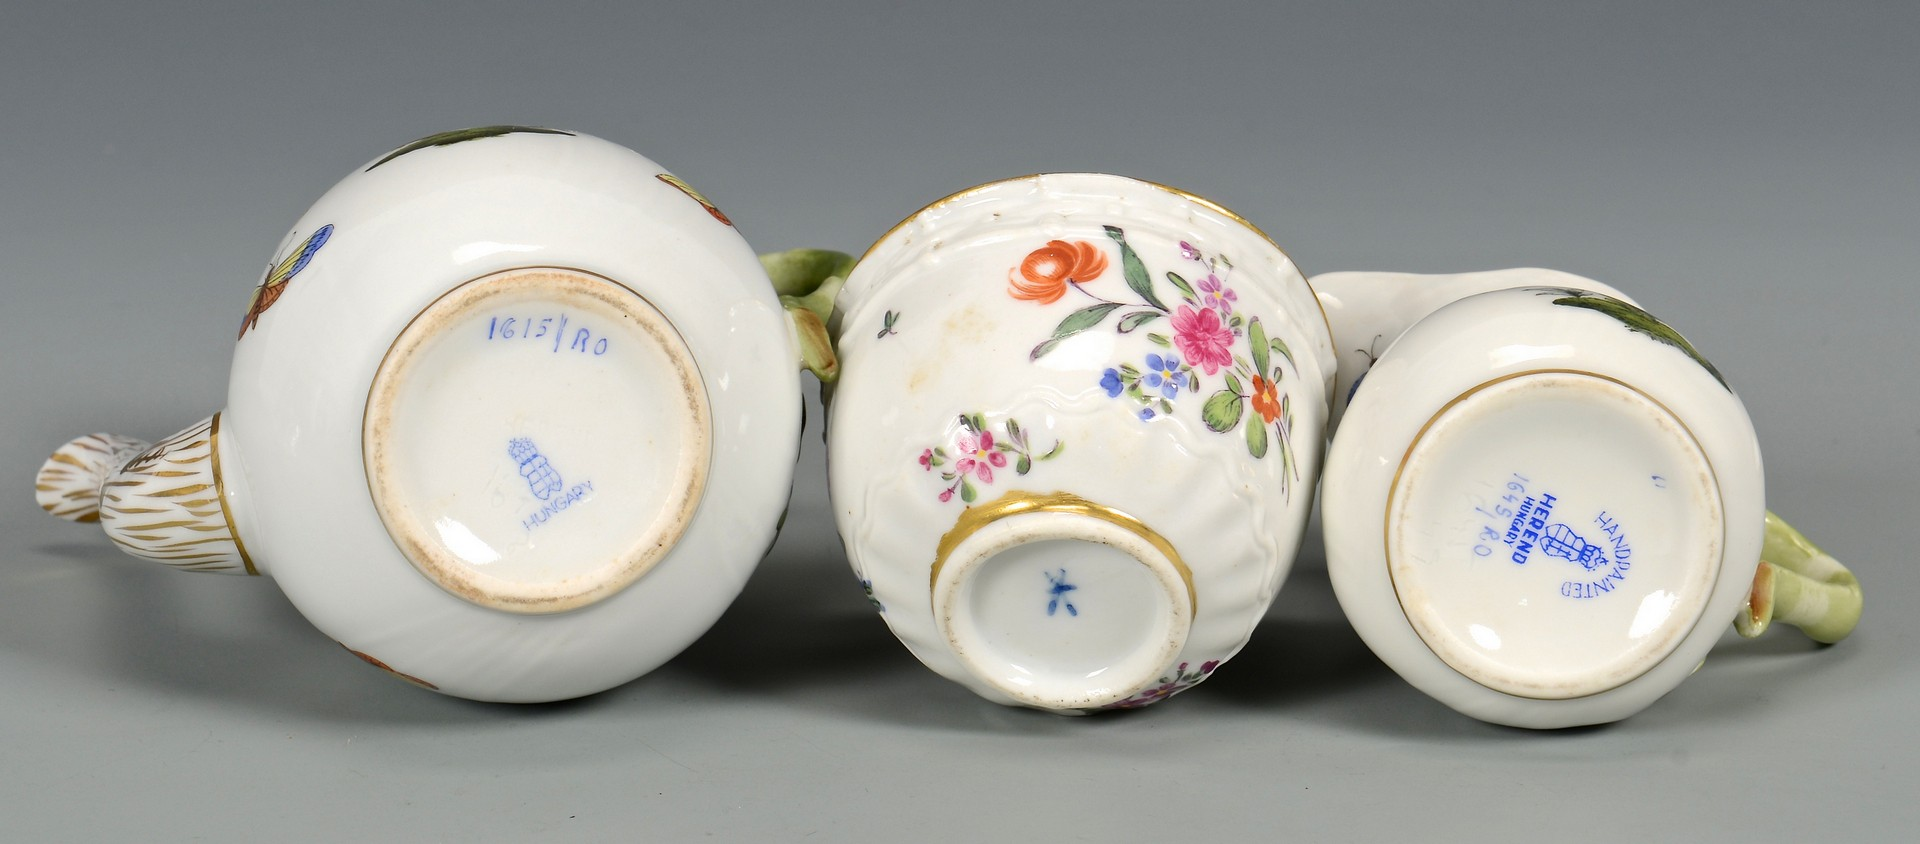 Lot 722: Group of Herend Rothschild plus Meissen